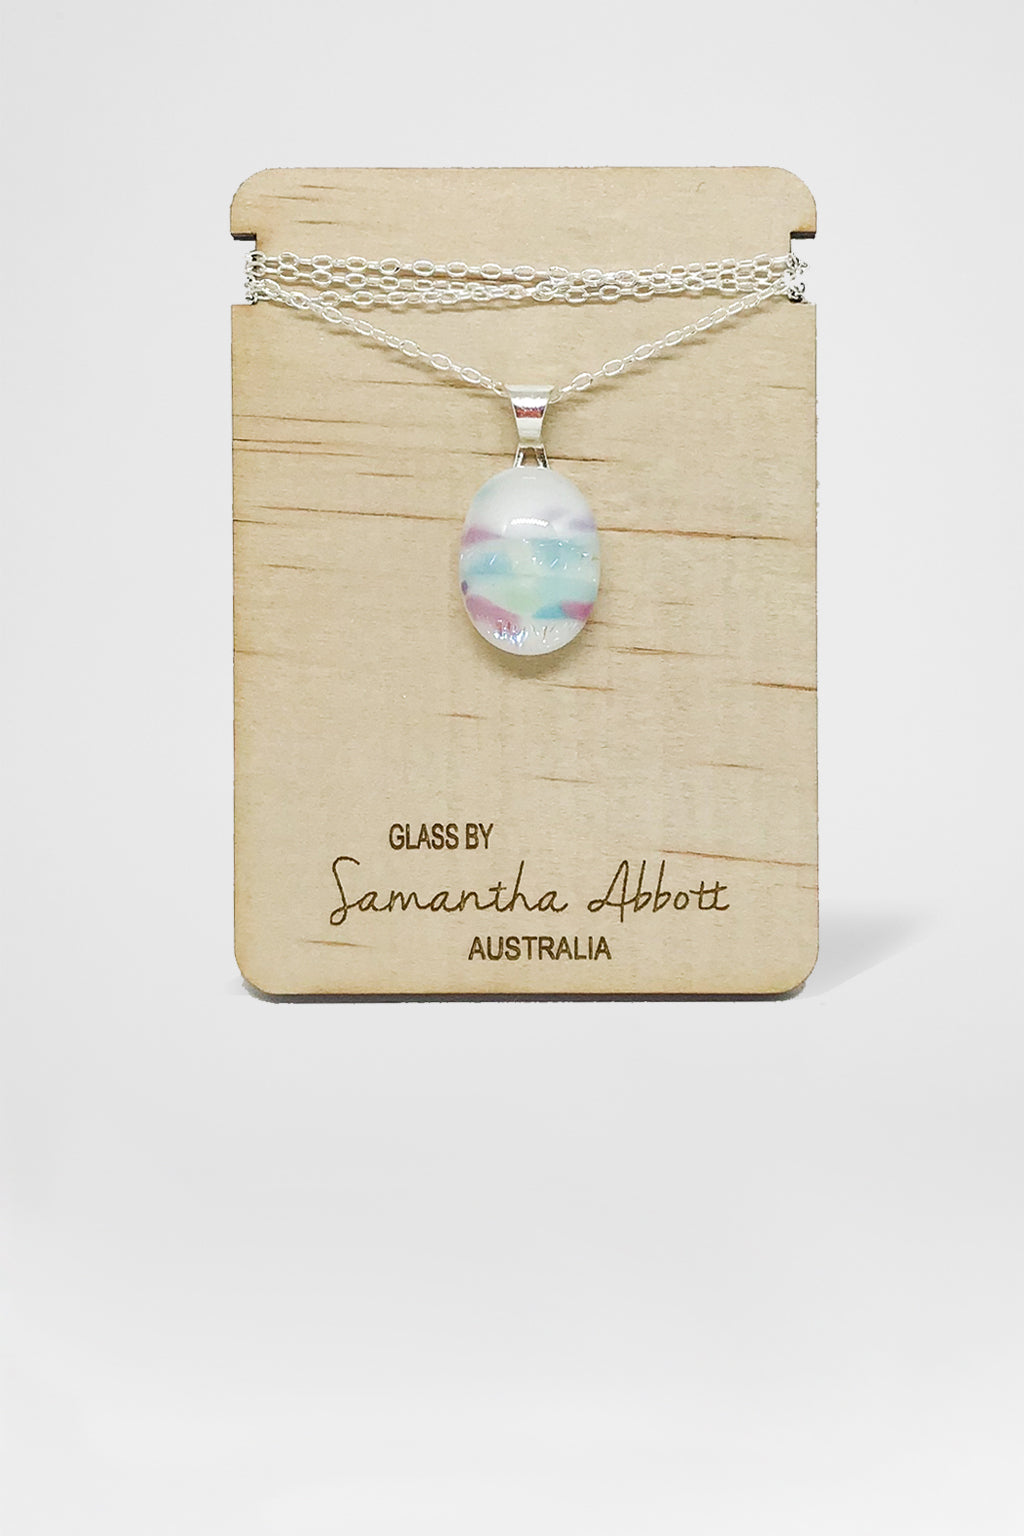 Samantha Abbott Glass-Glass Pendant Necklace - Cloud-Mott and Mulberry